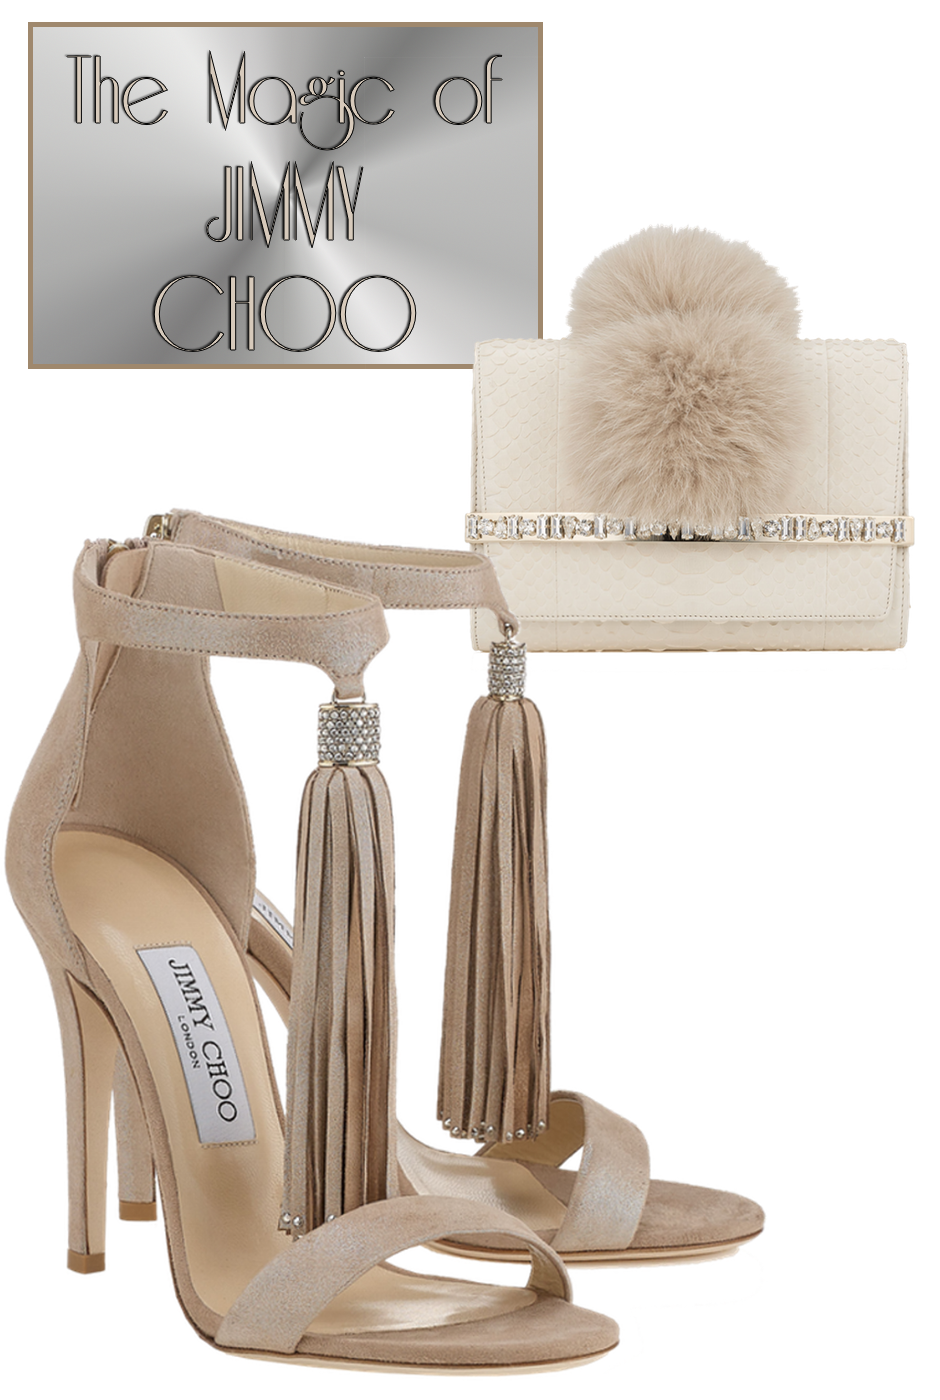 Jimmy Choo Bow White Python Clutch Bag with Crystal Bar and Fox Pom Poms